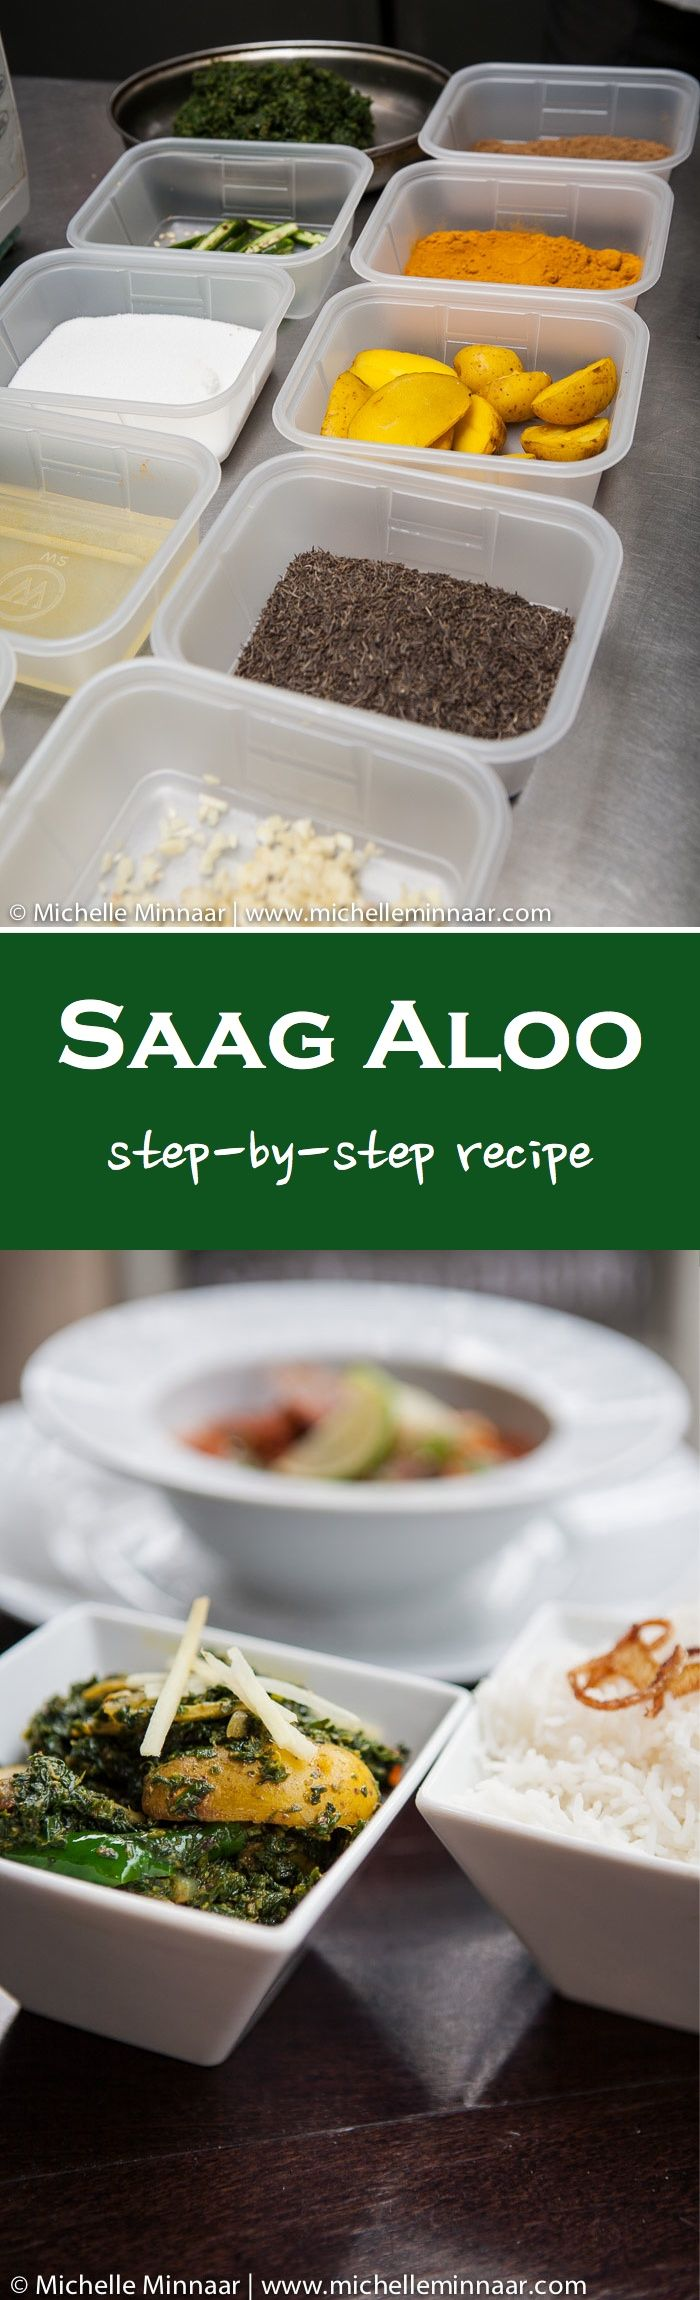 Saag Aloo: the ever-so-popular Indian side dish comprising spinach and potatoes.